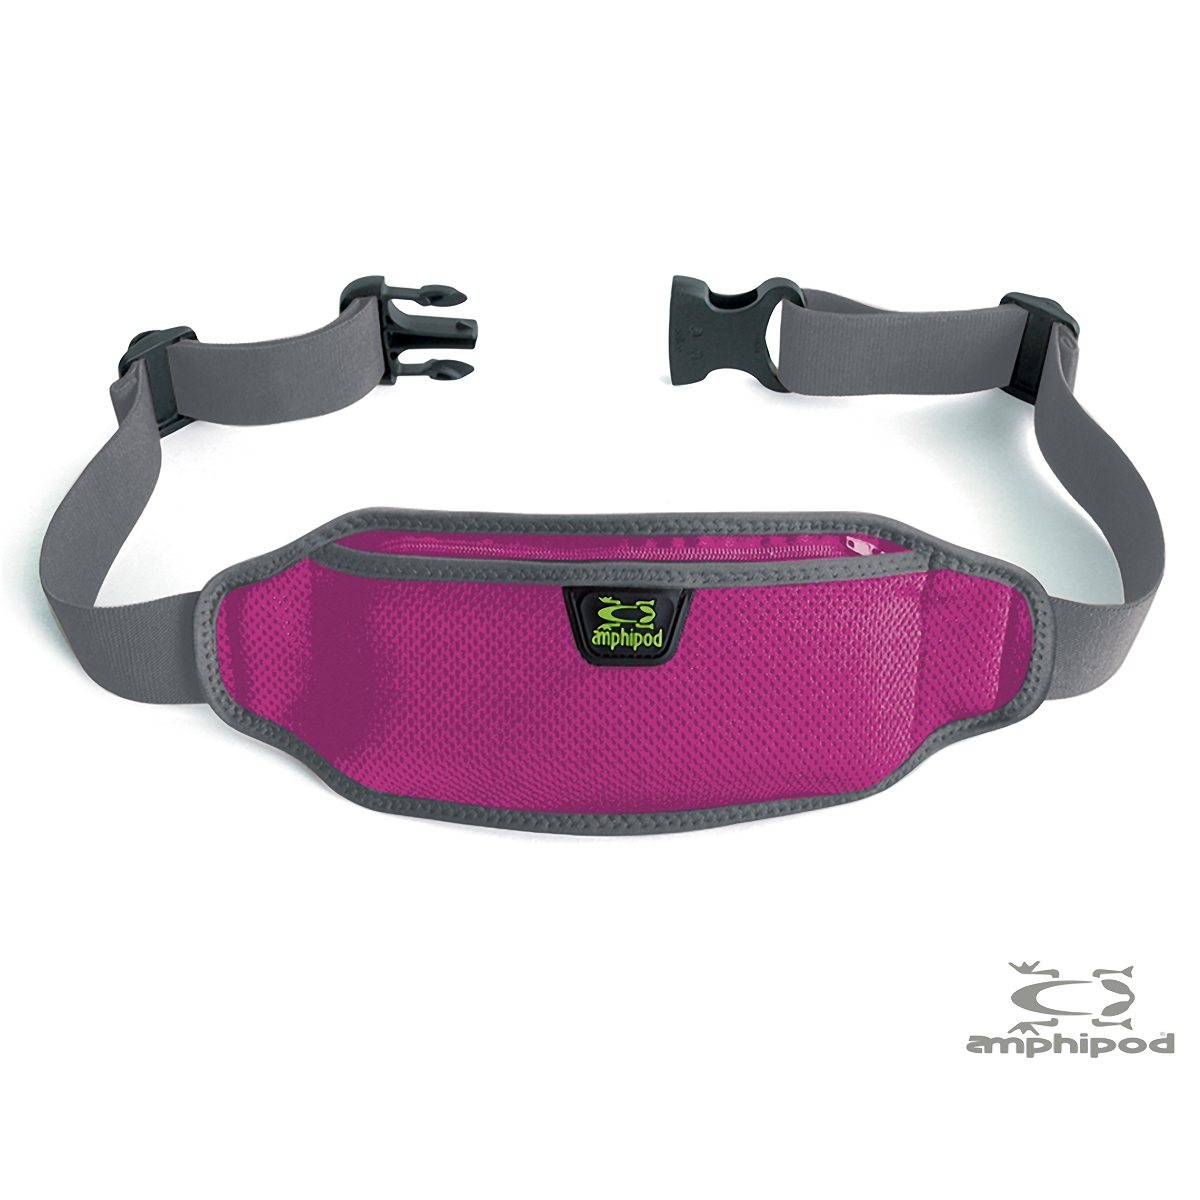 Amphipod Airflow Lite Pack  - Color: Wild Berry, Wild Berry, large, image 1